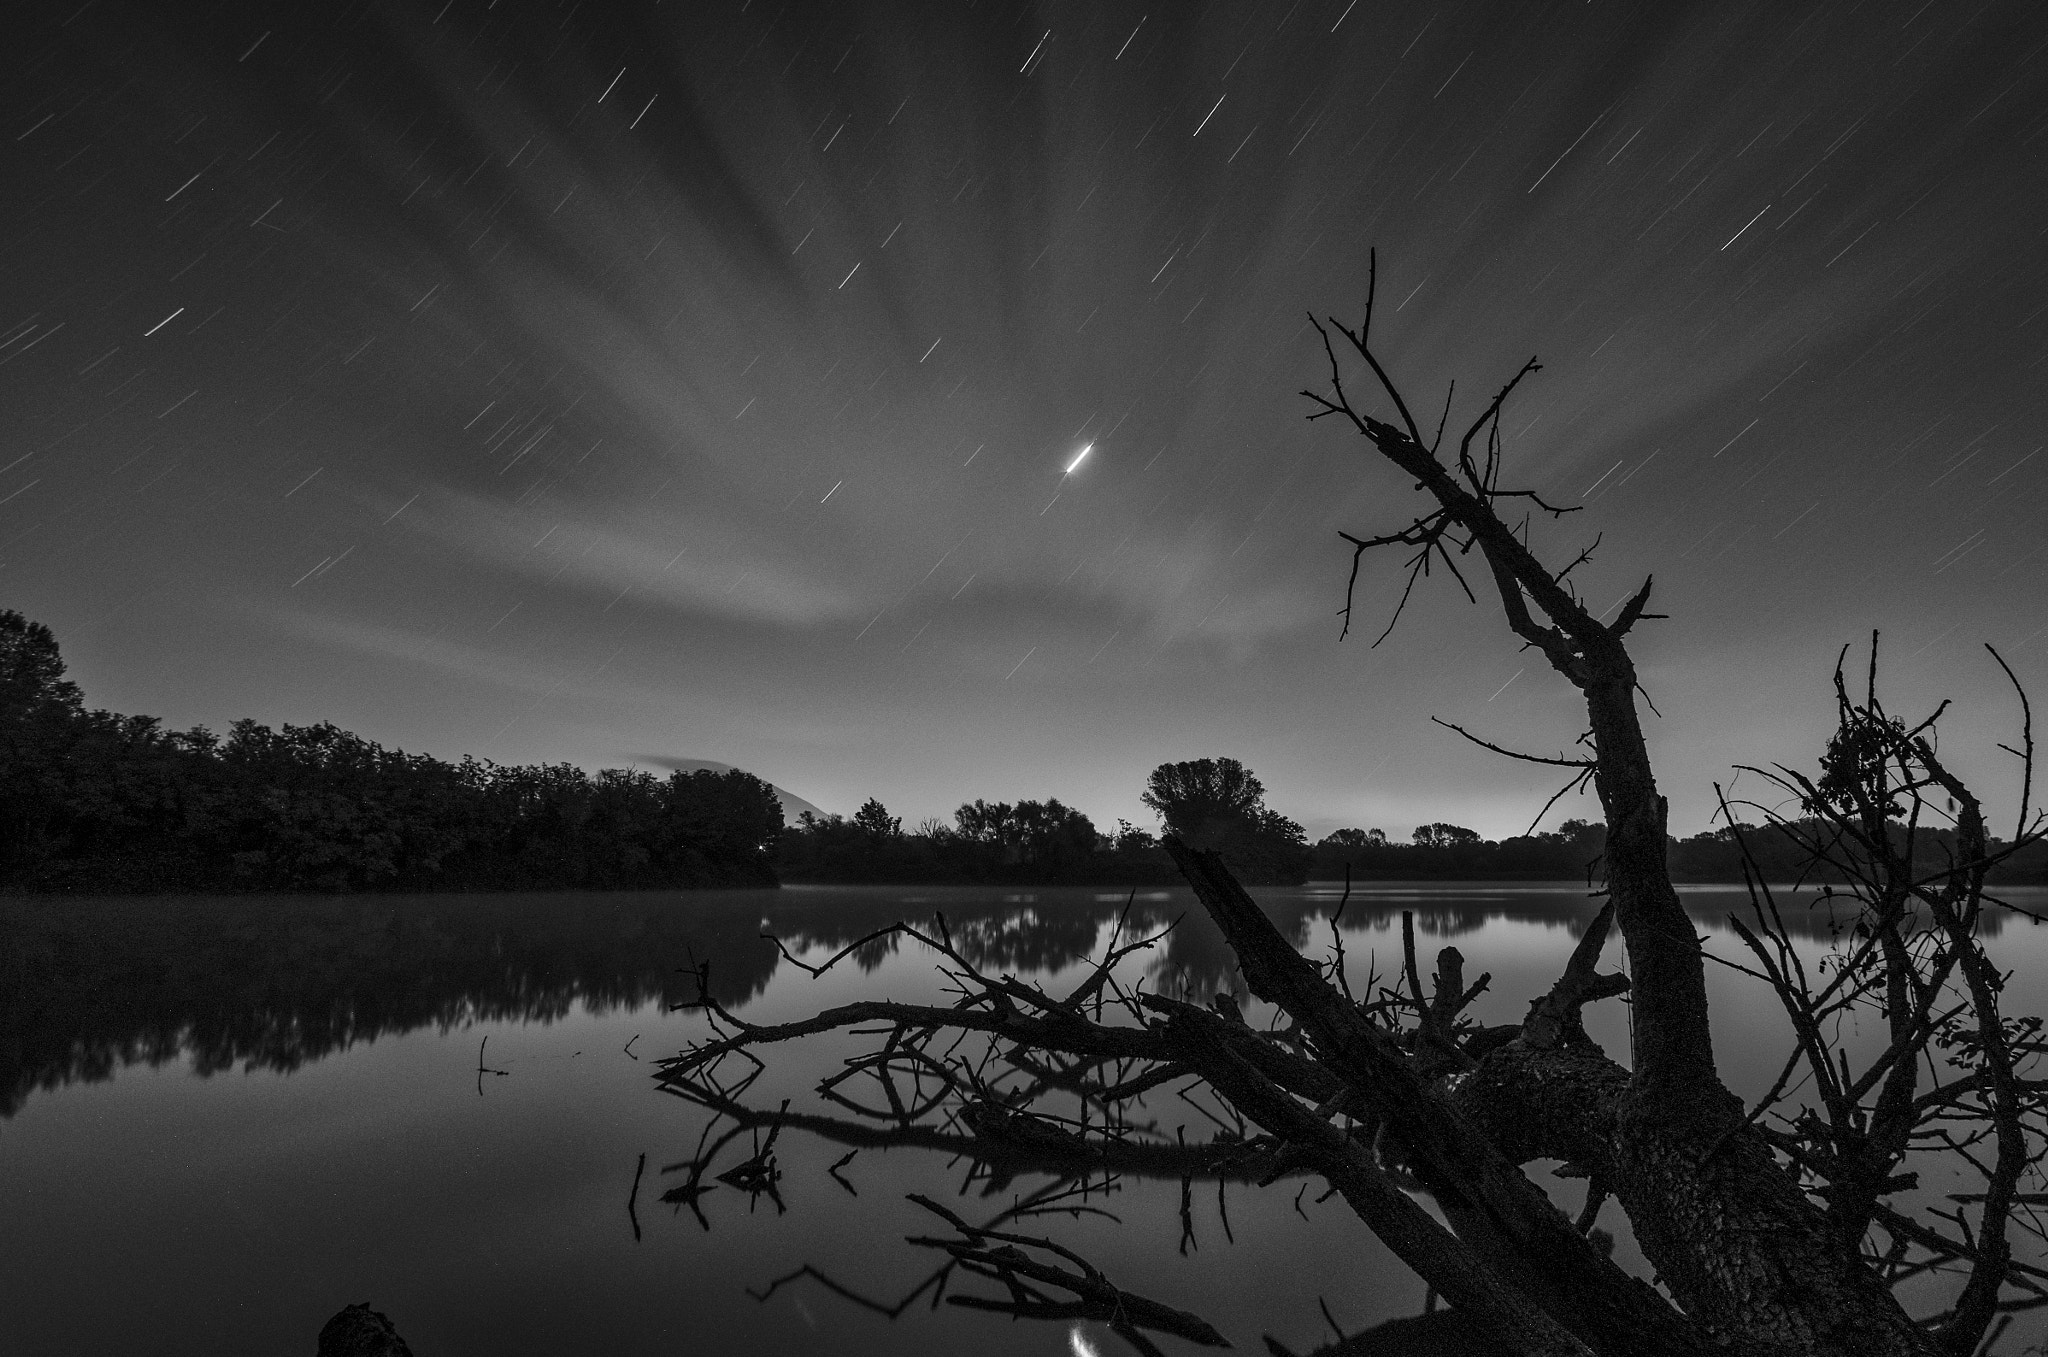 Photograph Falling stars by Alessandro Di Vito on 500px